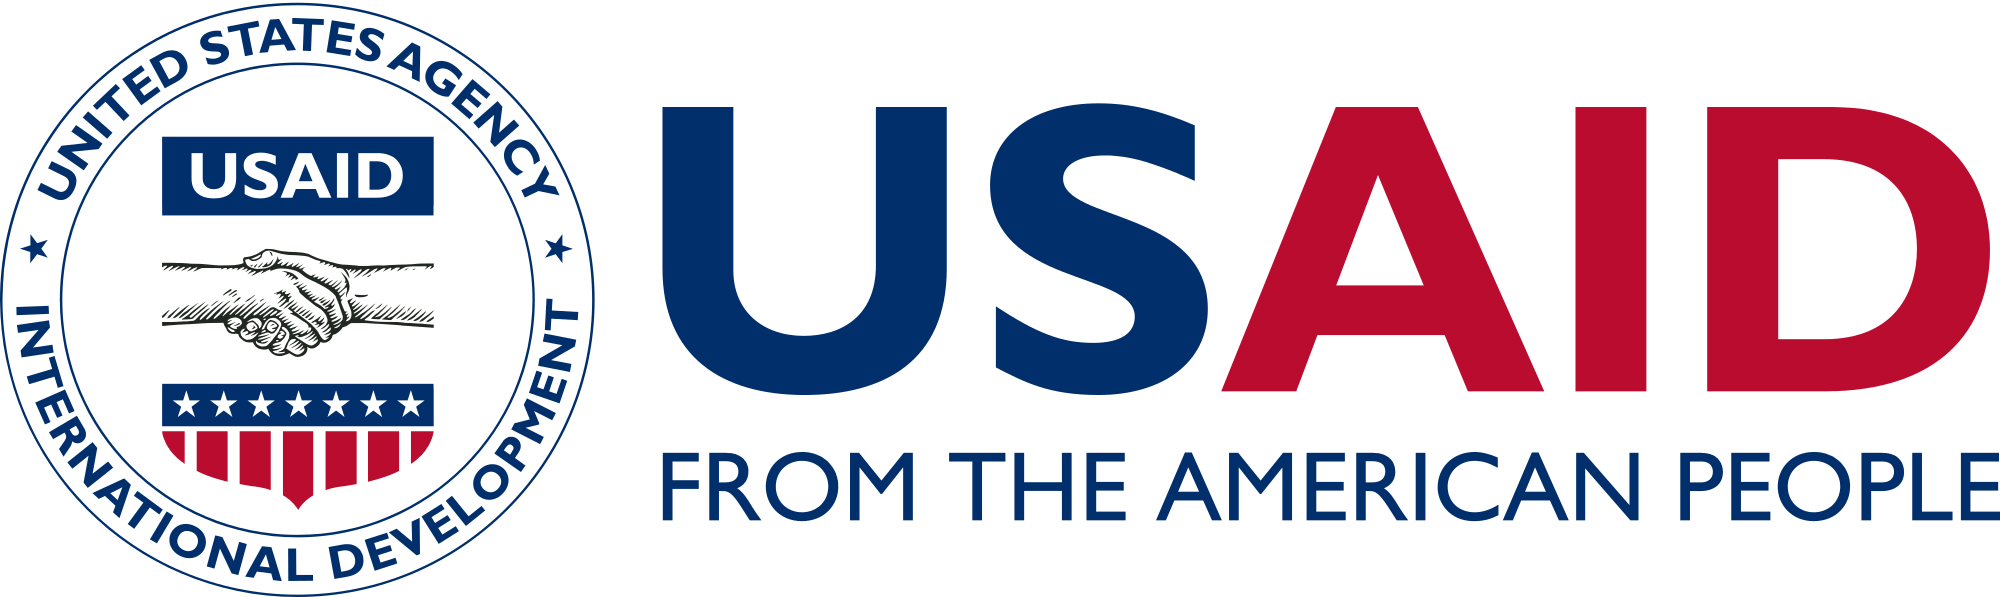 USAID Uganda Jobs Part Time Jobs in Uganda 2017